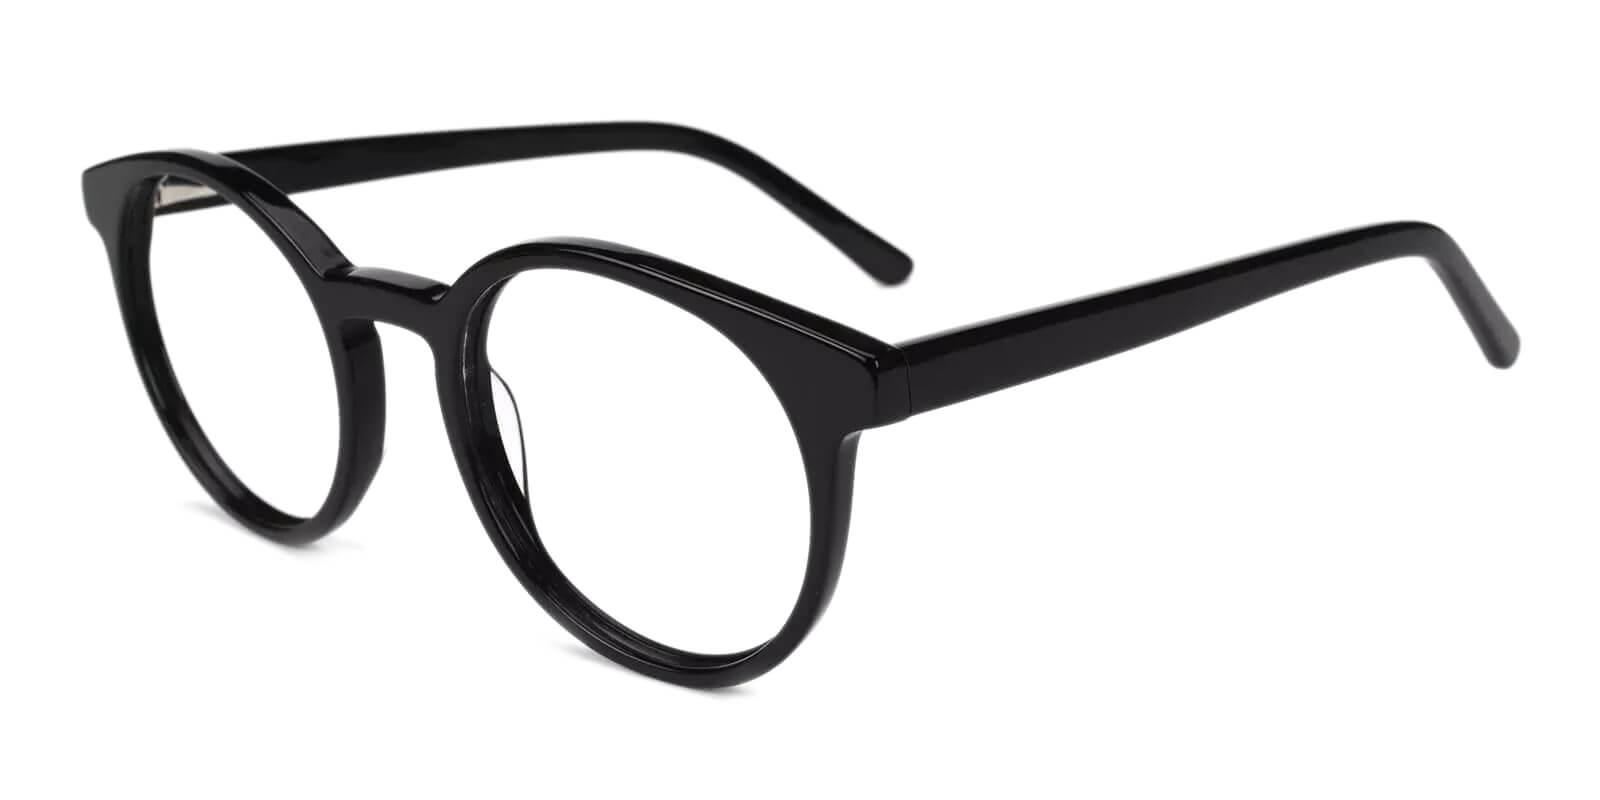 Ottawa Black Acetate Eyeglasses , Fashion , UniversalBridgeFit Frames from ABBE Glasses